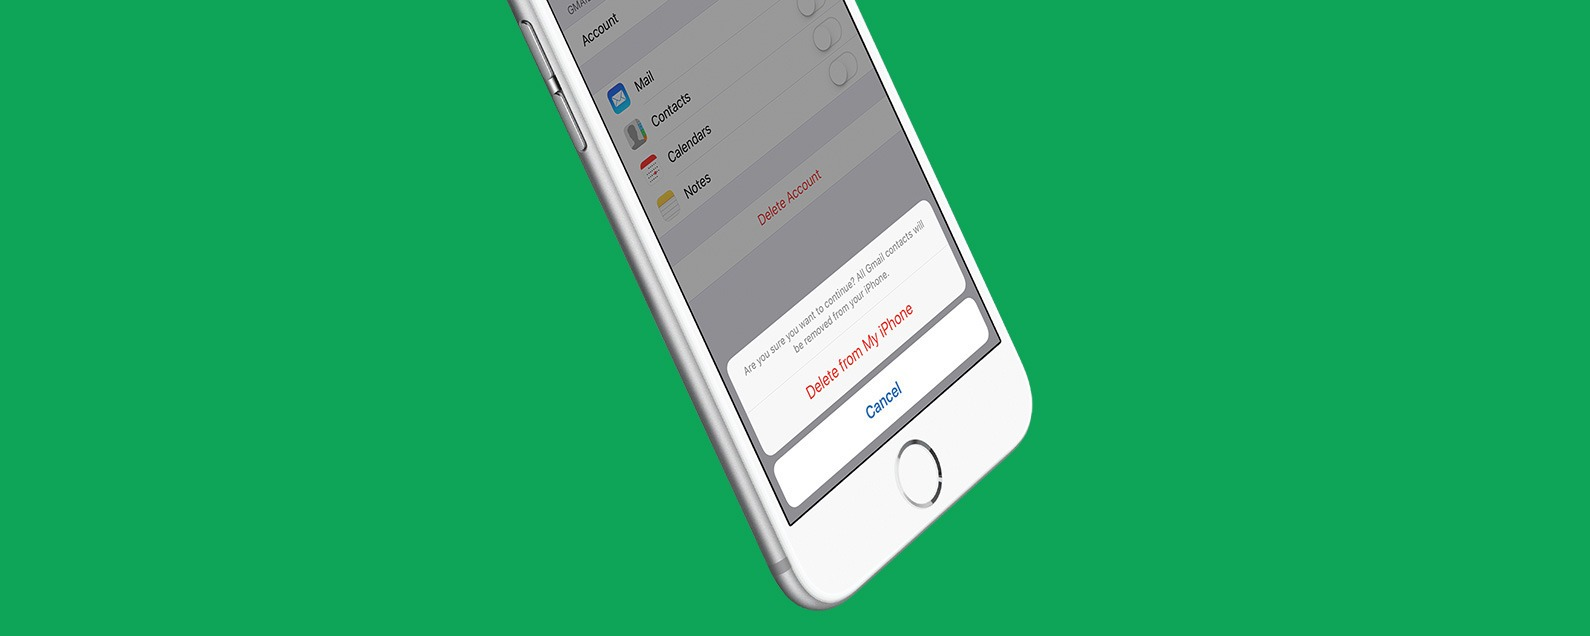 How to Easily Delete All Contacts on iPhone | iPhoneLife com